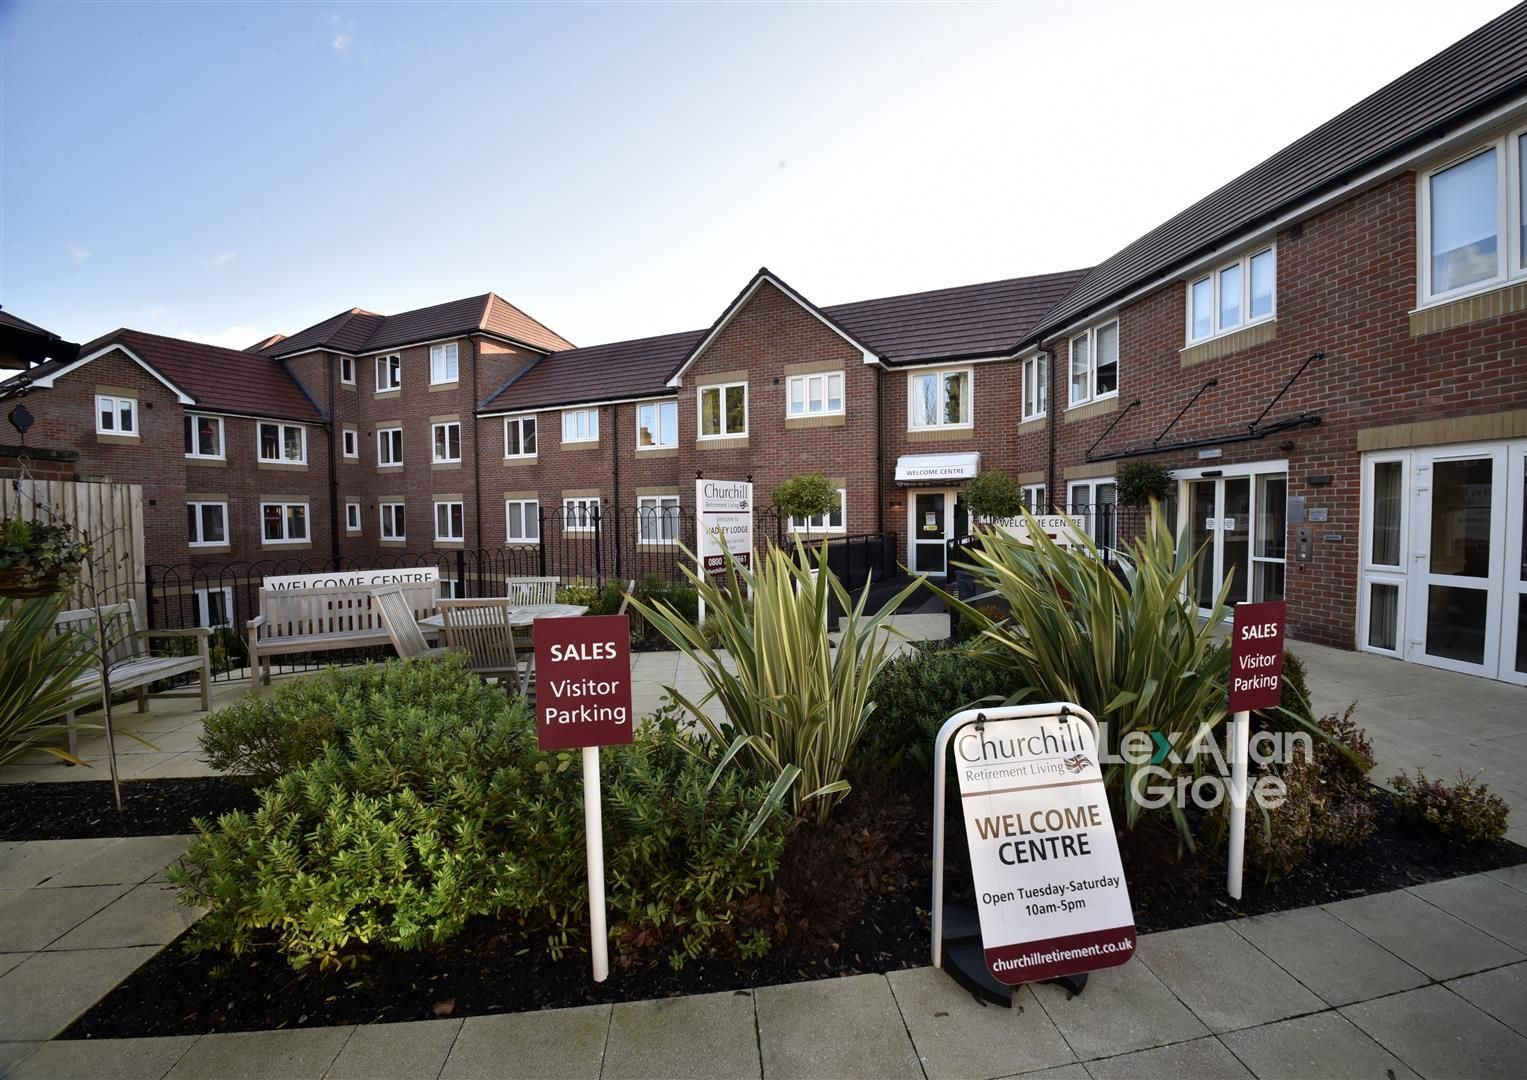 1 bed apartment for sale - Property Image 1